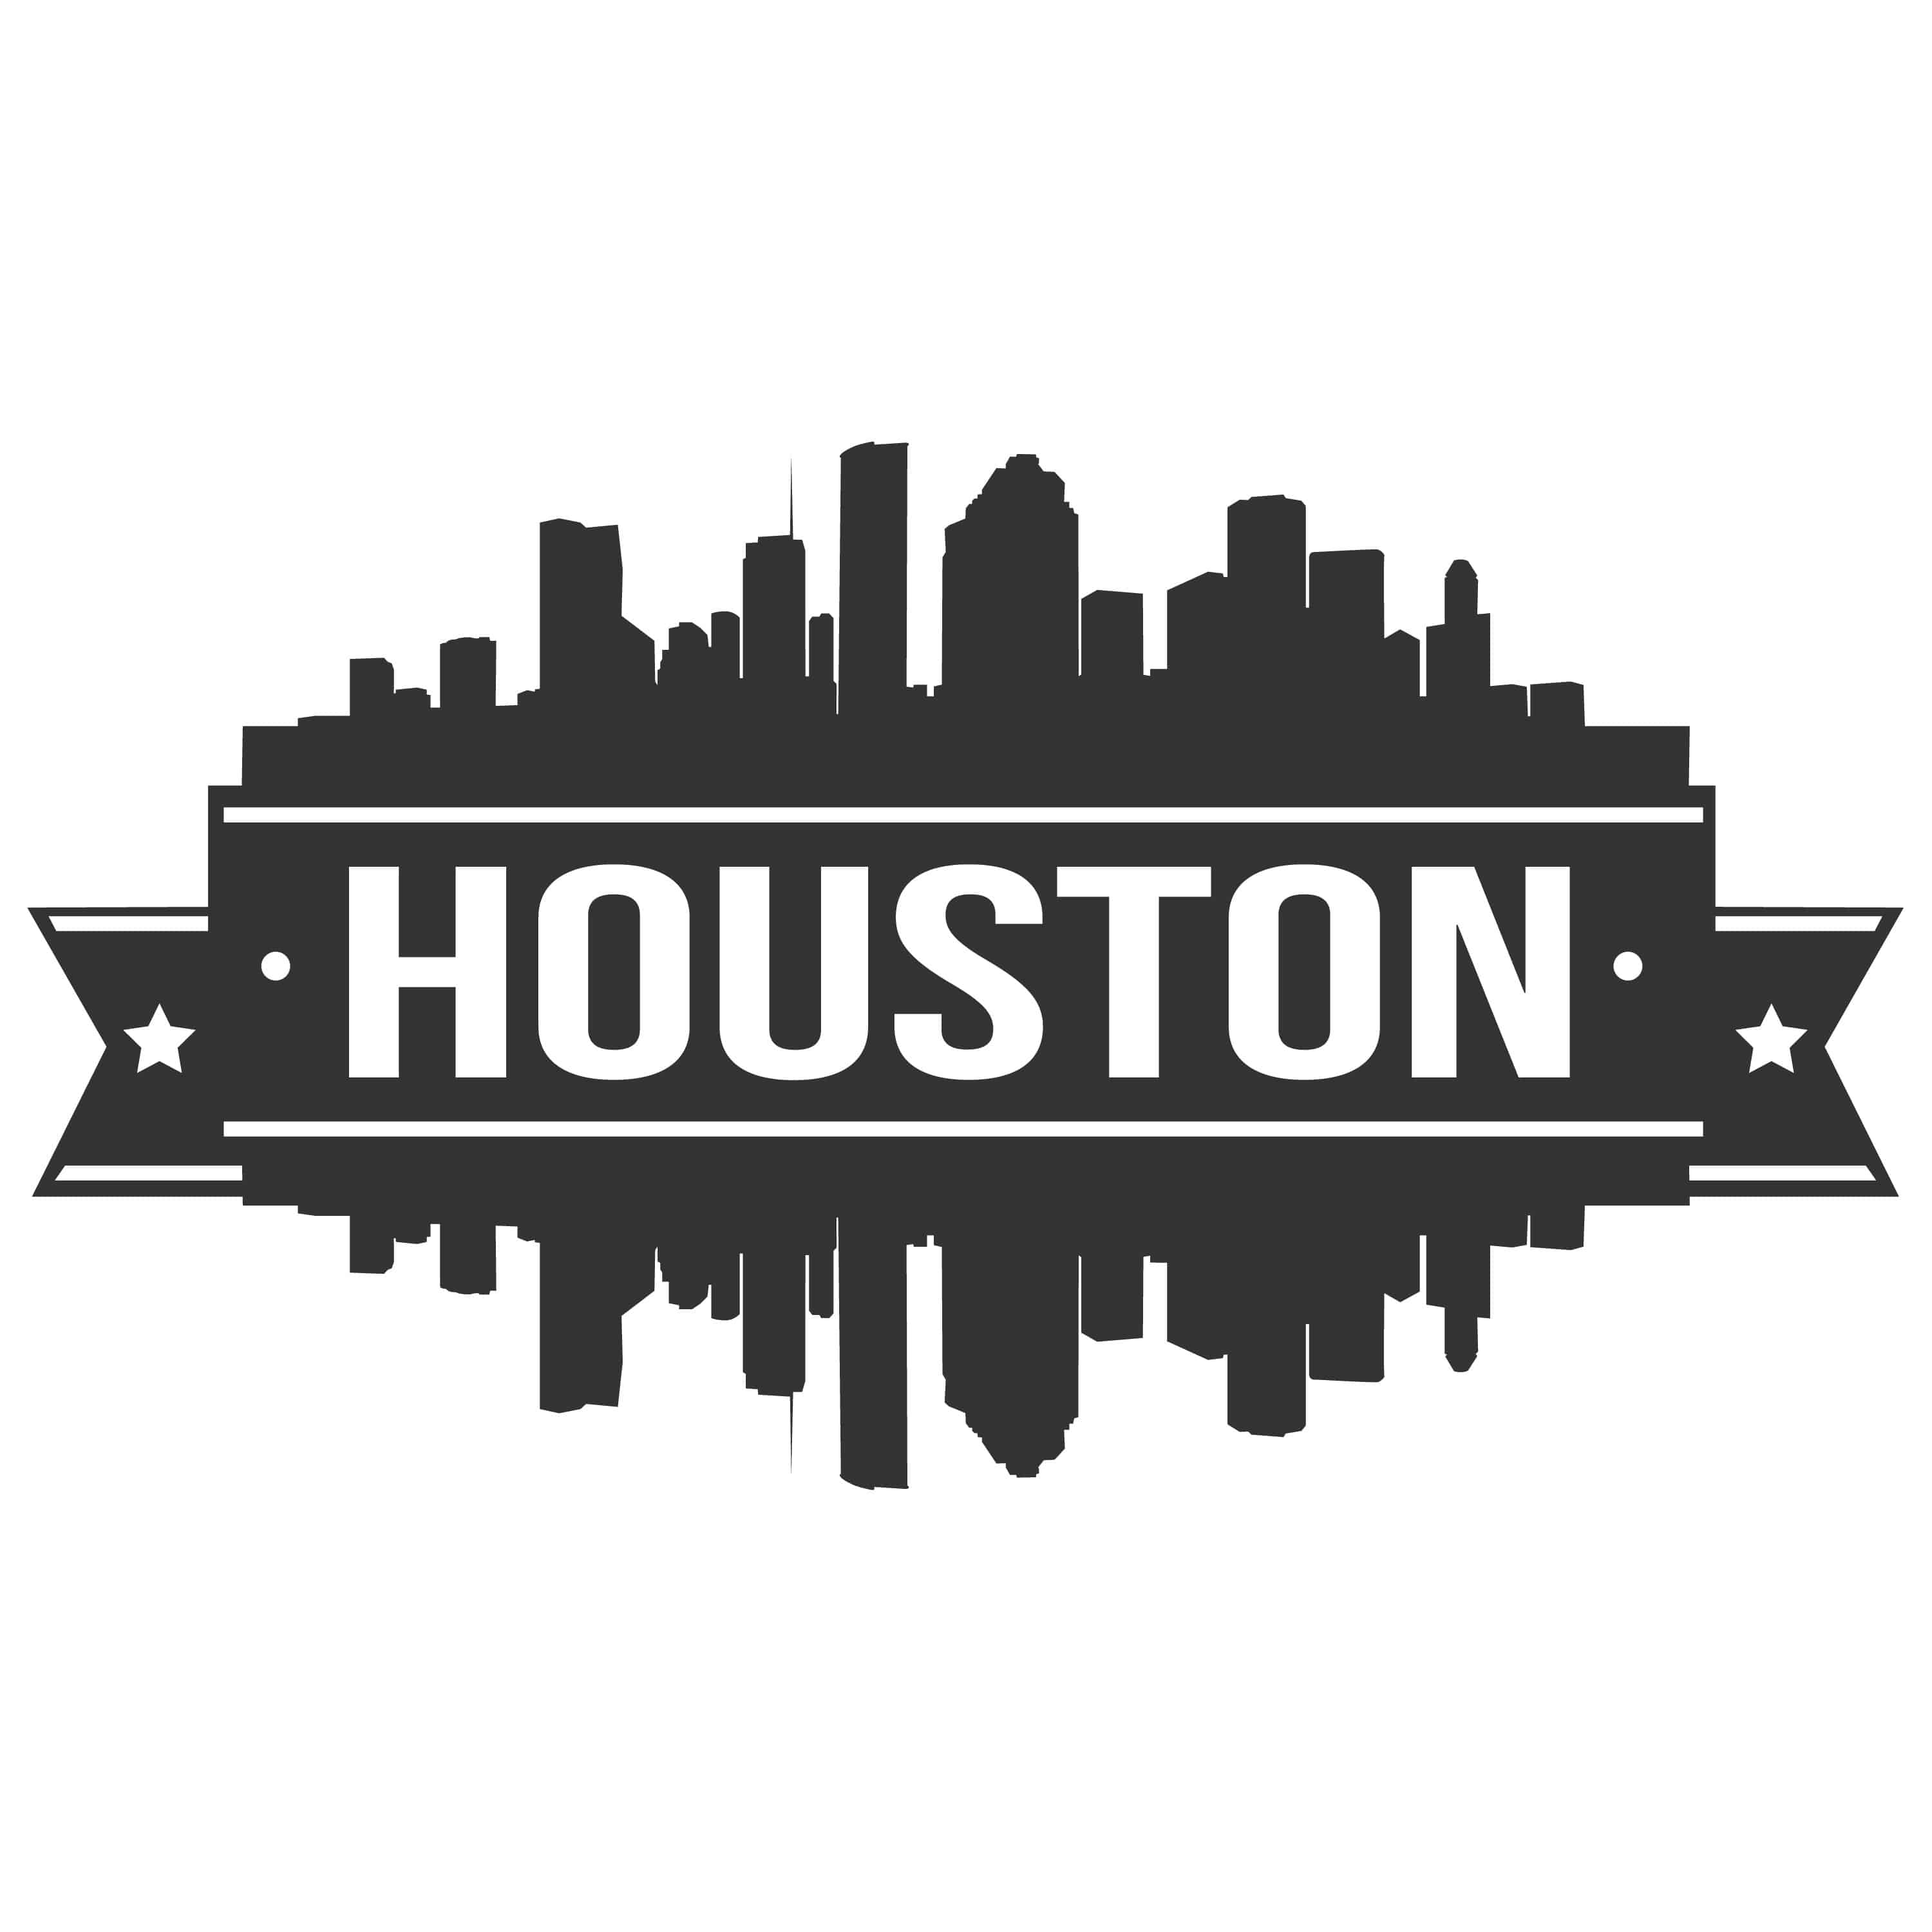 What Are Some Questions to Ask a Houston Personal Injury Lawyer?